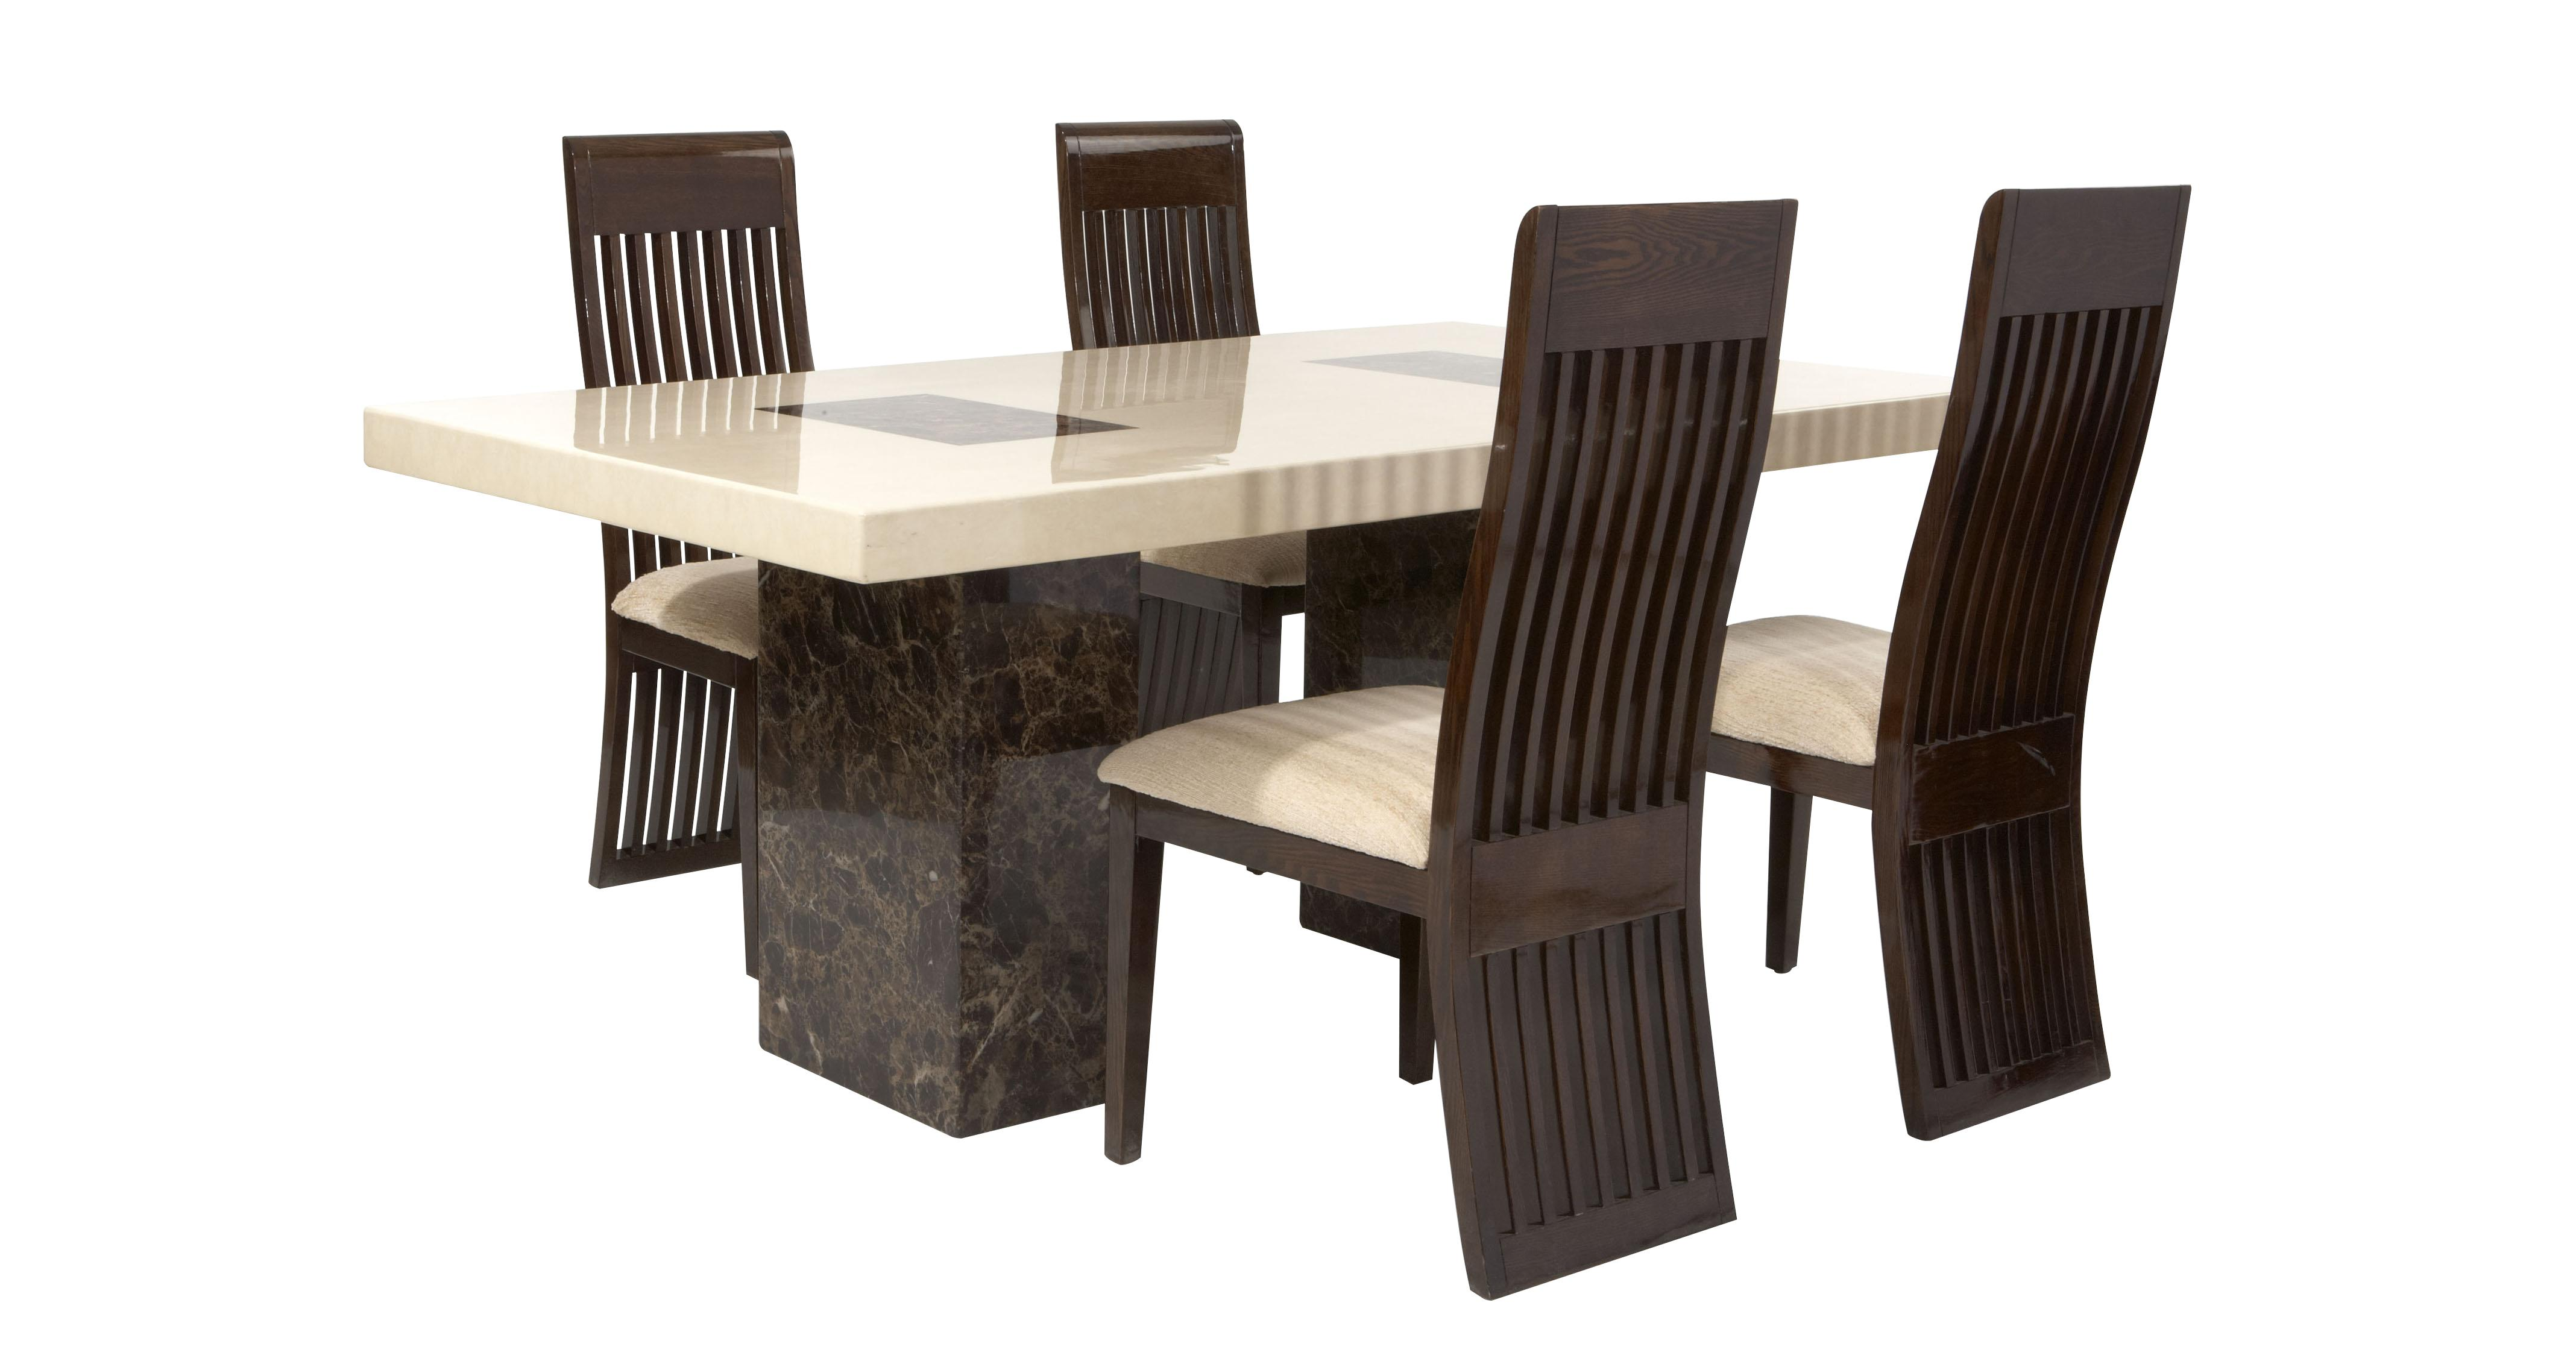 Marlow Dining Table Images. Dfs Dining Table Images 48x48 Coffee ...